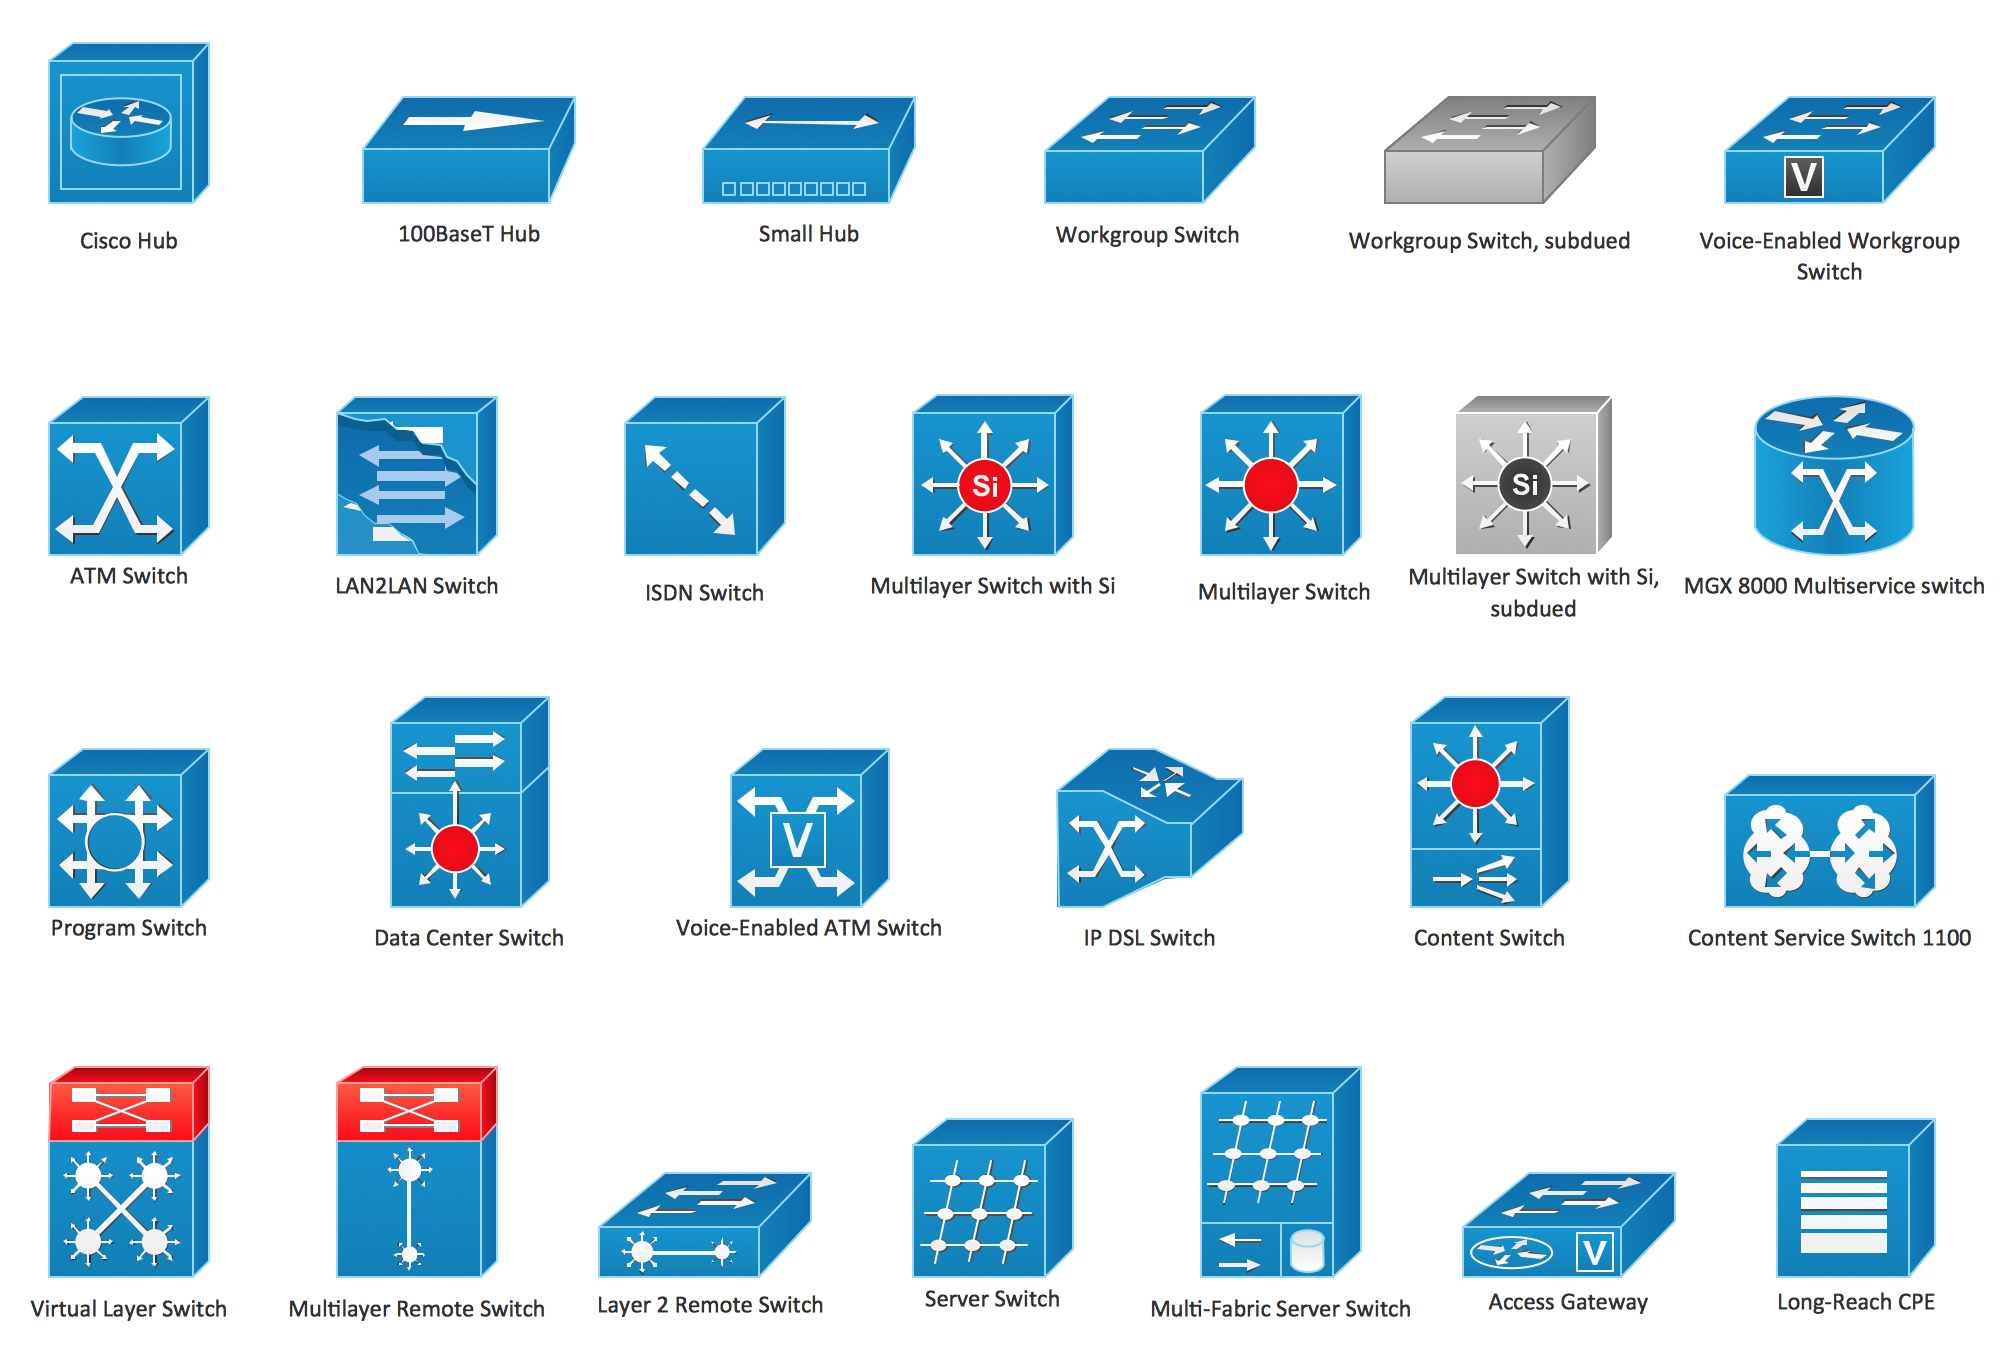 cisco switches and hubs cisco icons, shapes, stencils and symbolscisco switches and hubs cisco icons, shapes, stencils and symbols · cisco network diagram